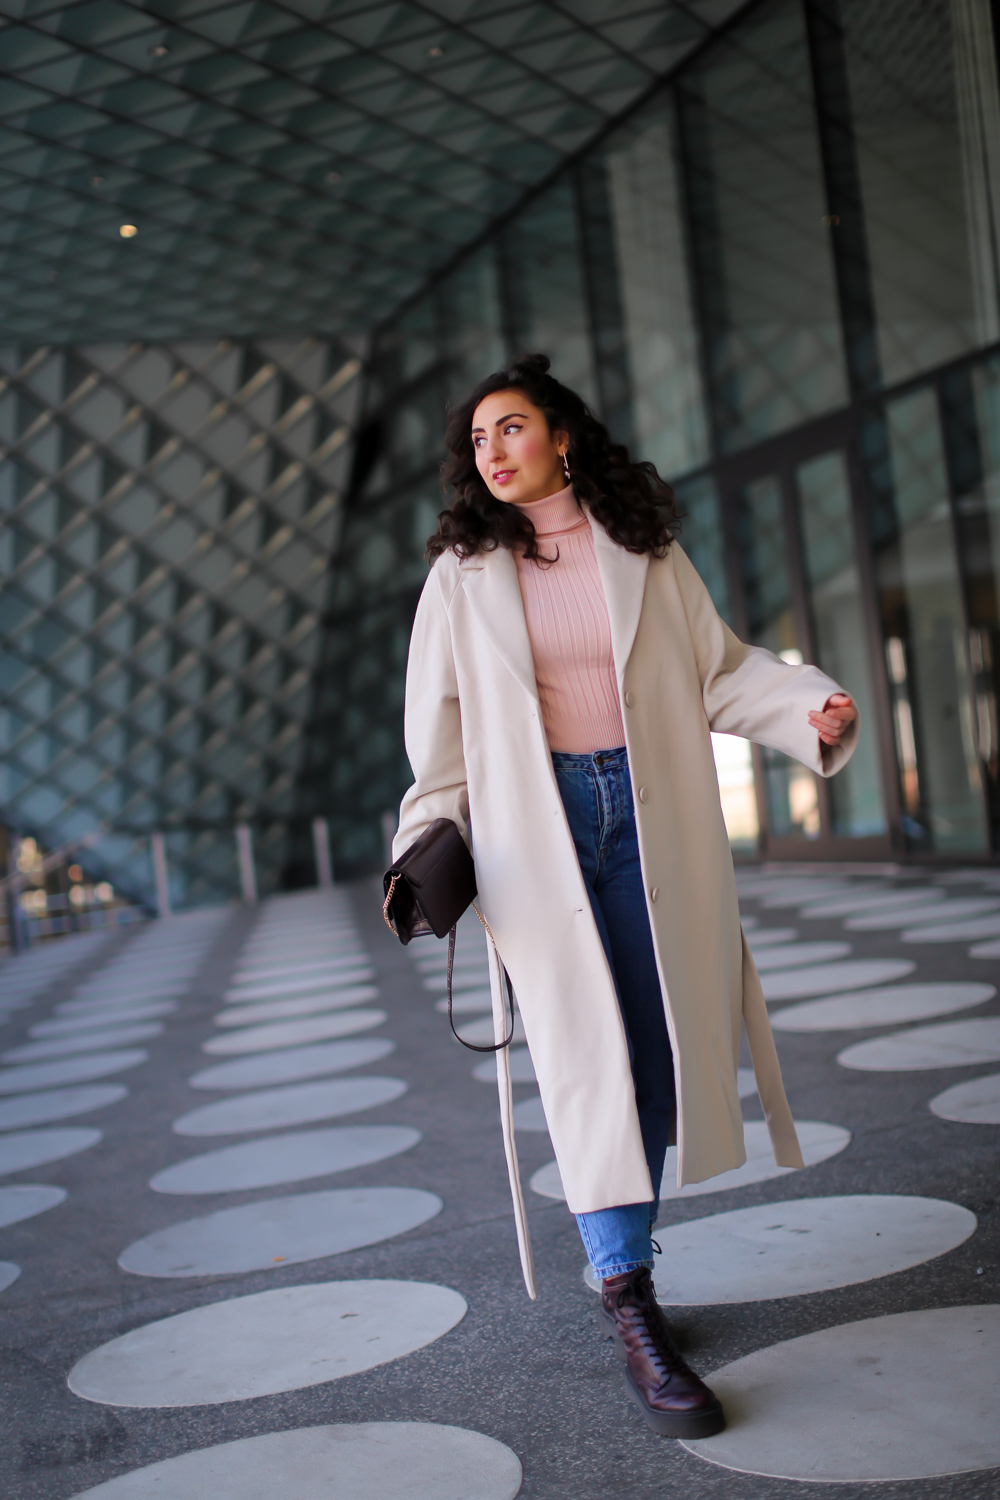 mom jeans white weekday wool coat casual spring outfit samieze modeblog spring style 2020 berlin